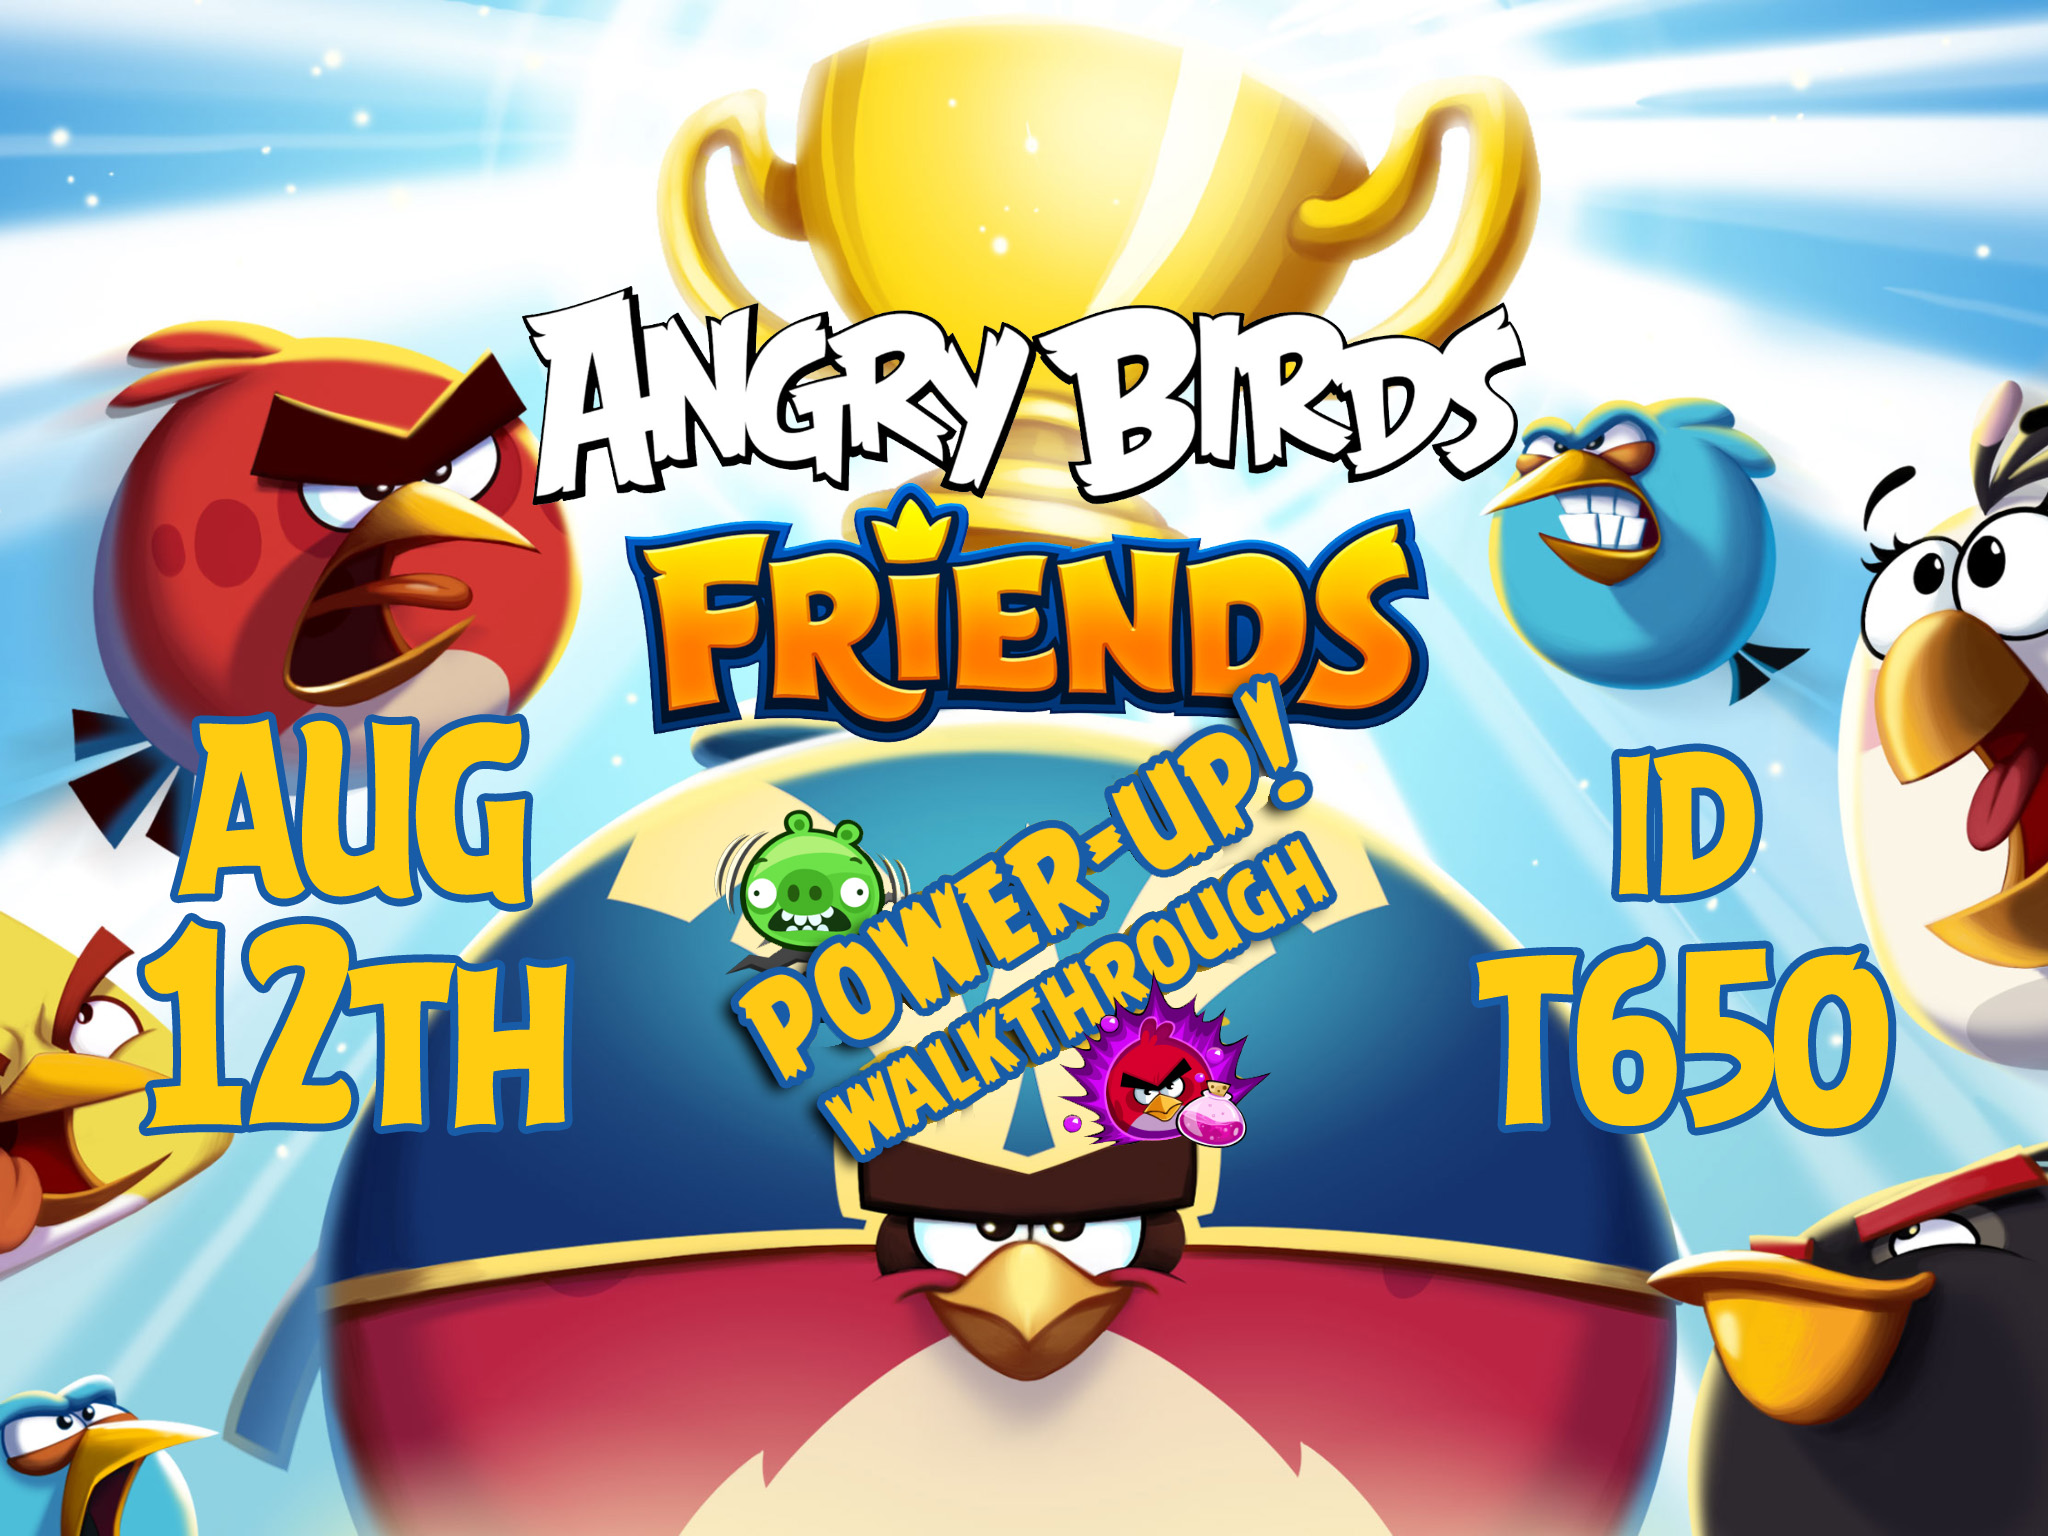 Angry Birds Friends 2019 Tournament T650 On Now! | AngryBirdsNest